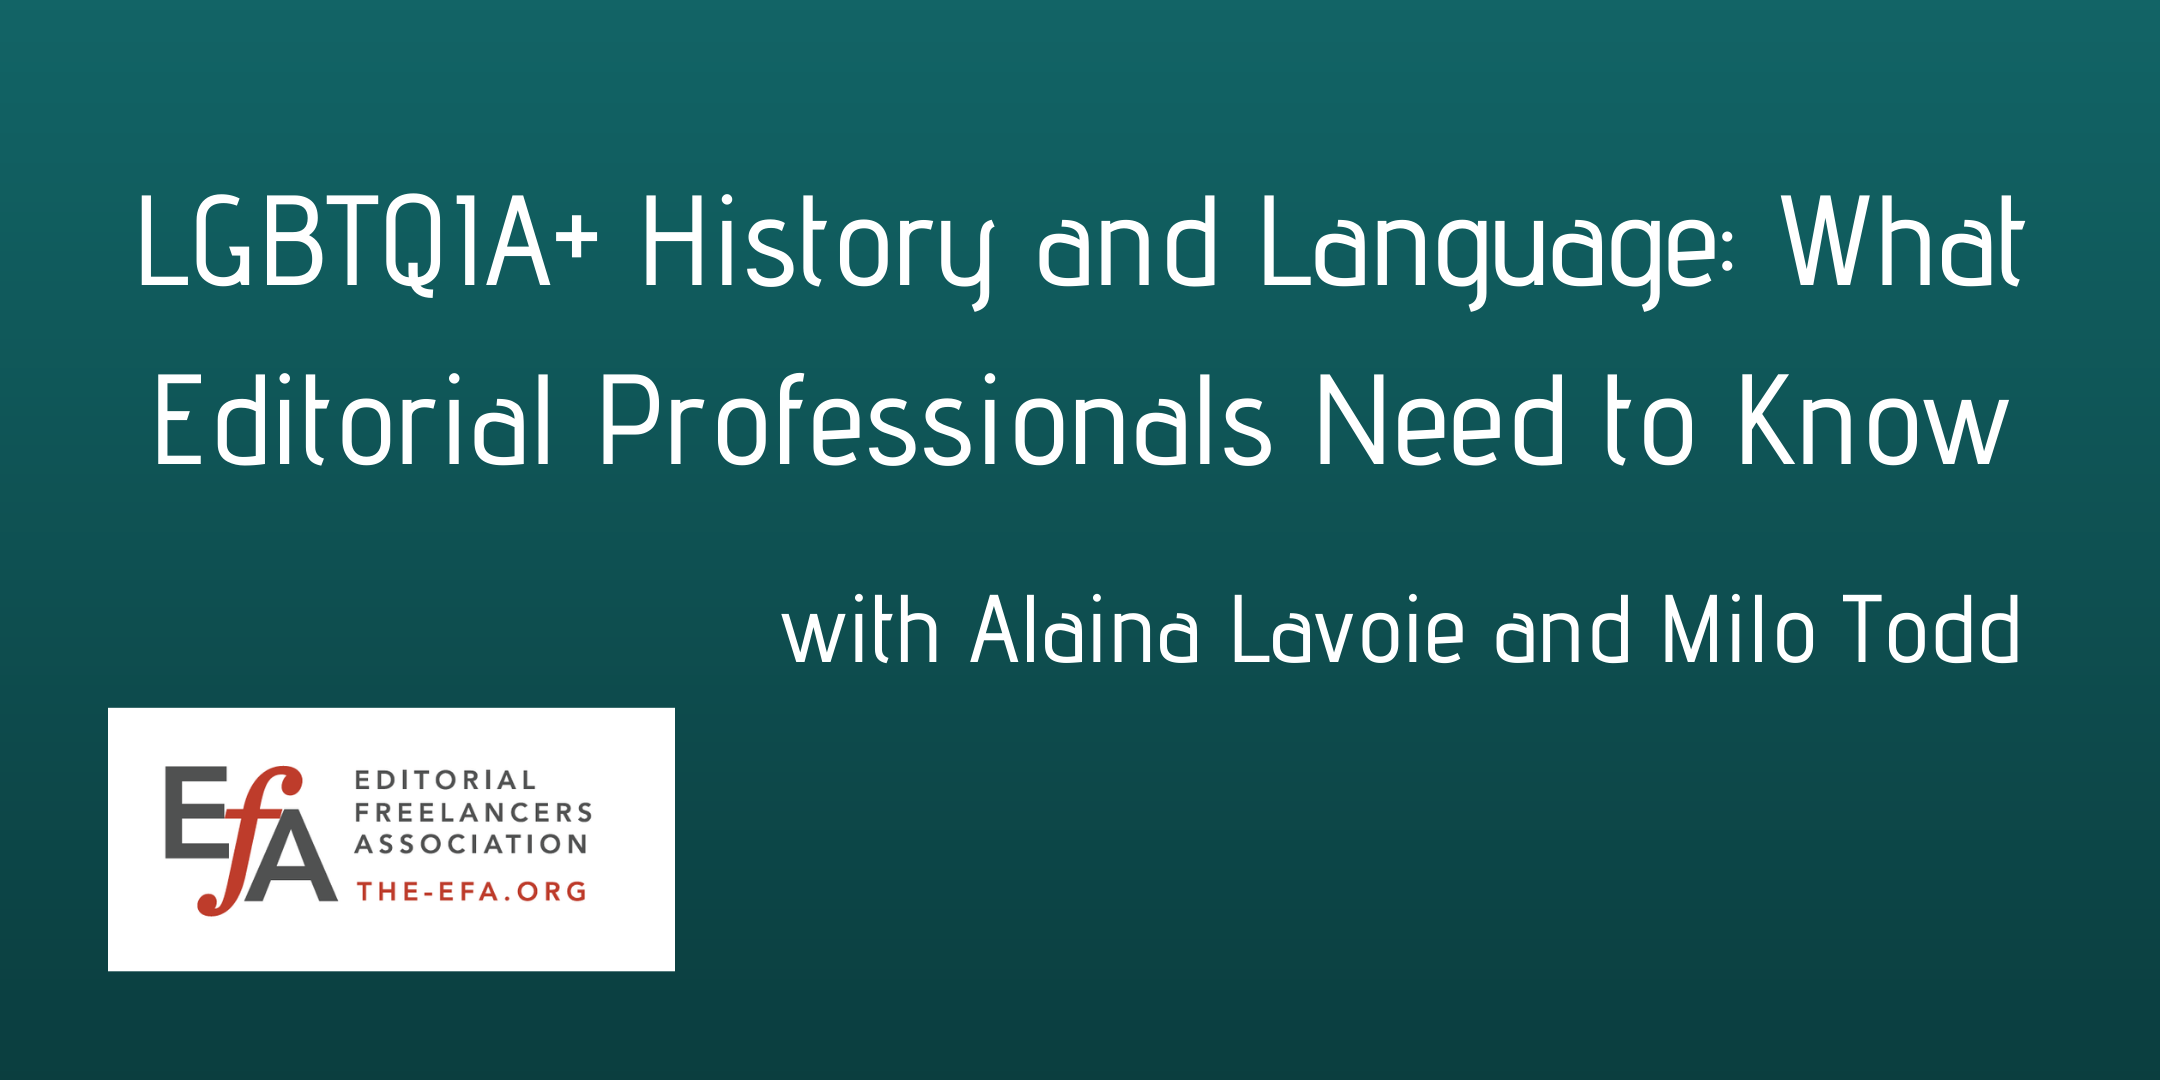 lgbtqia-history-and-language_-what-editorial-professionals-need-to-know-copy